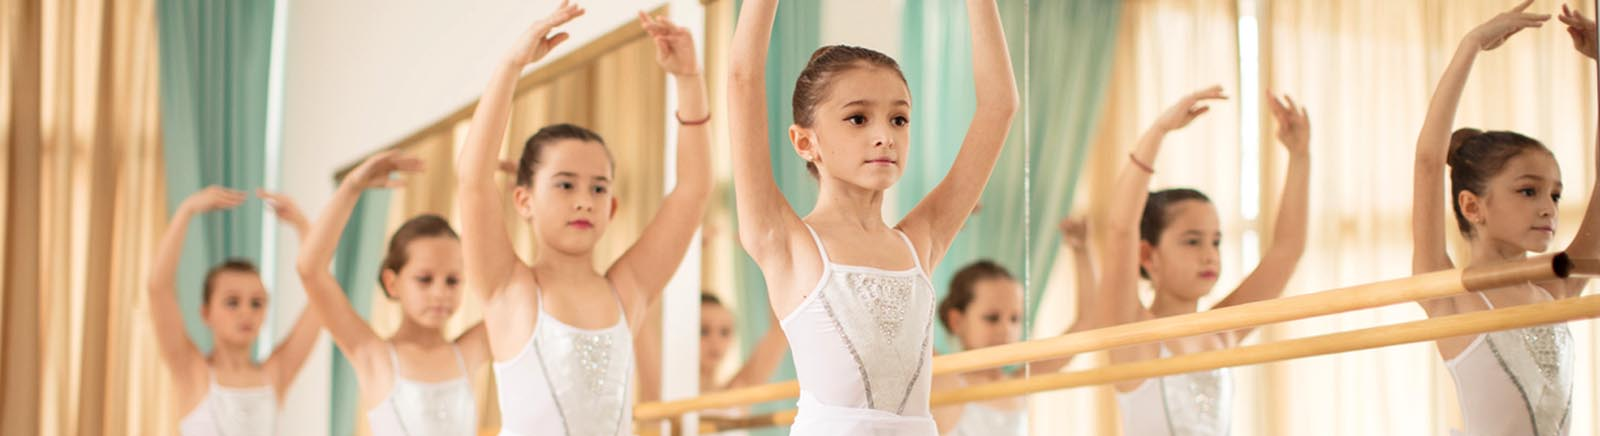 Ballett | Kreativer Kindertanz post image